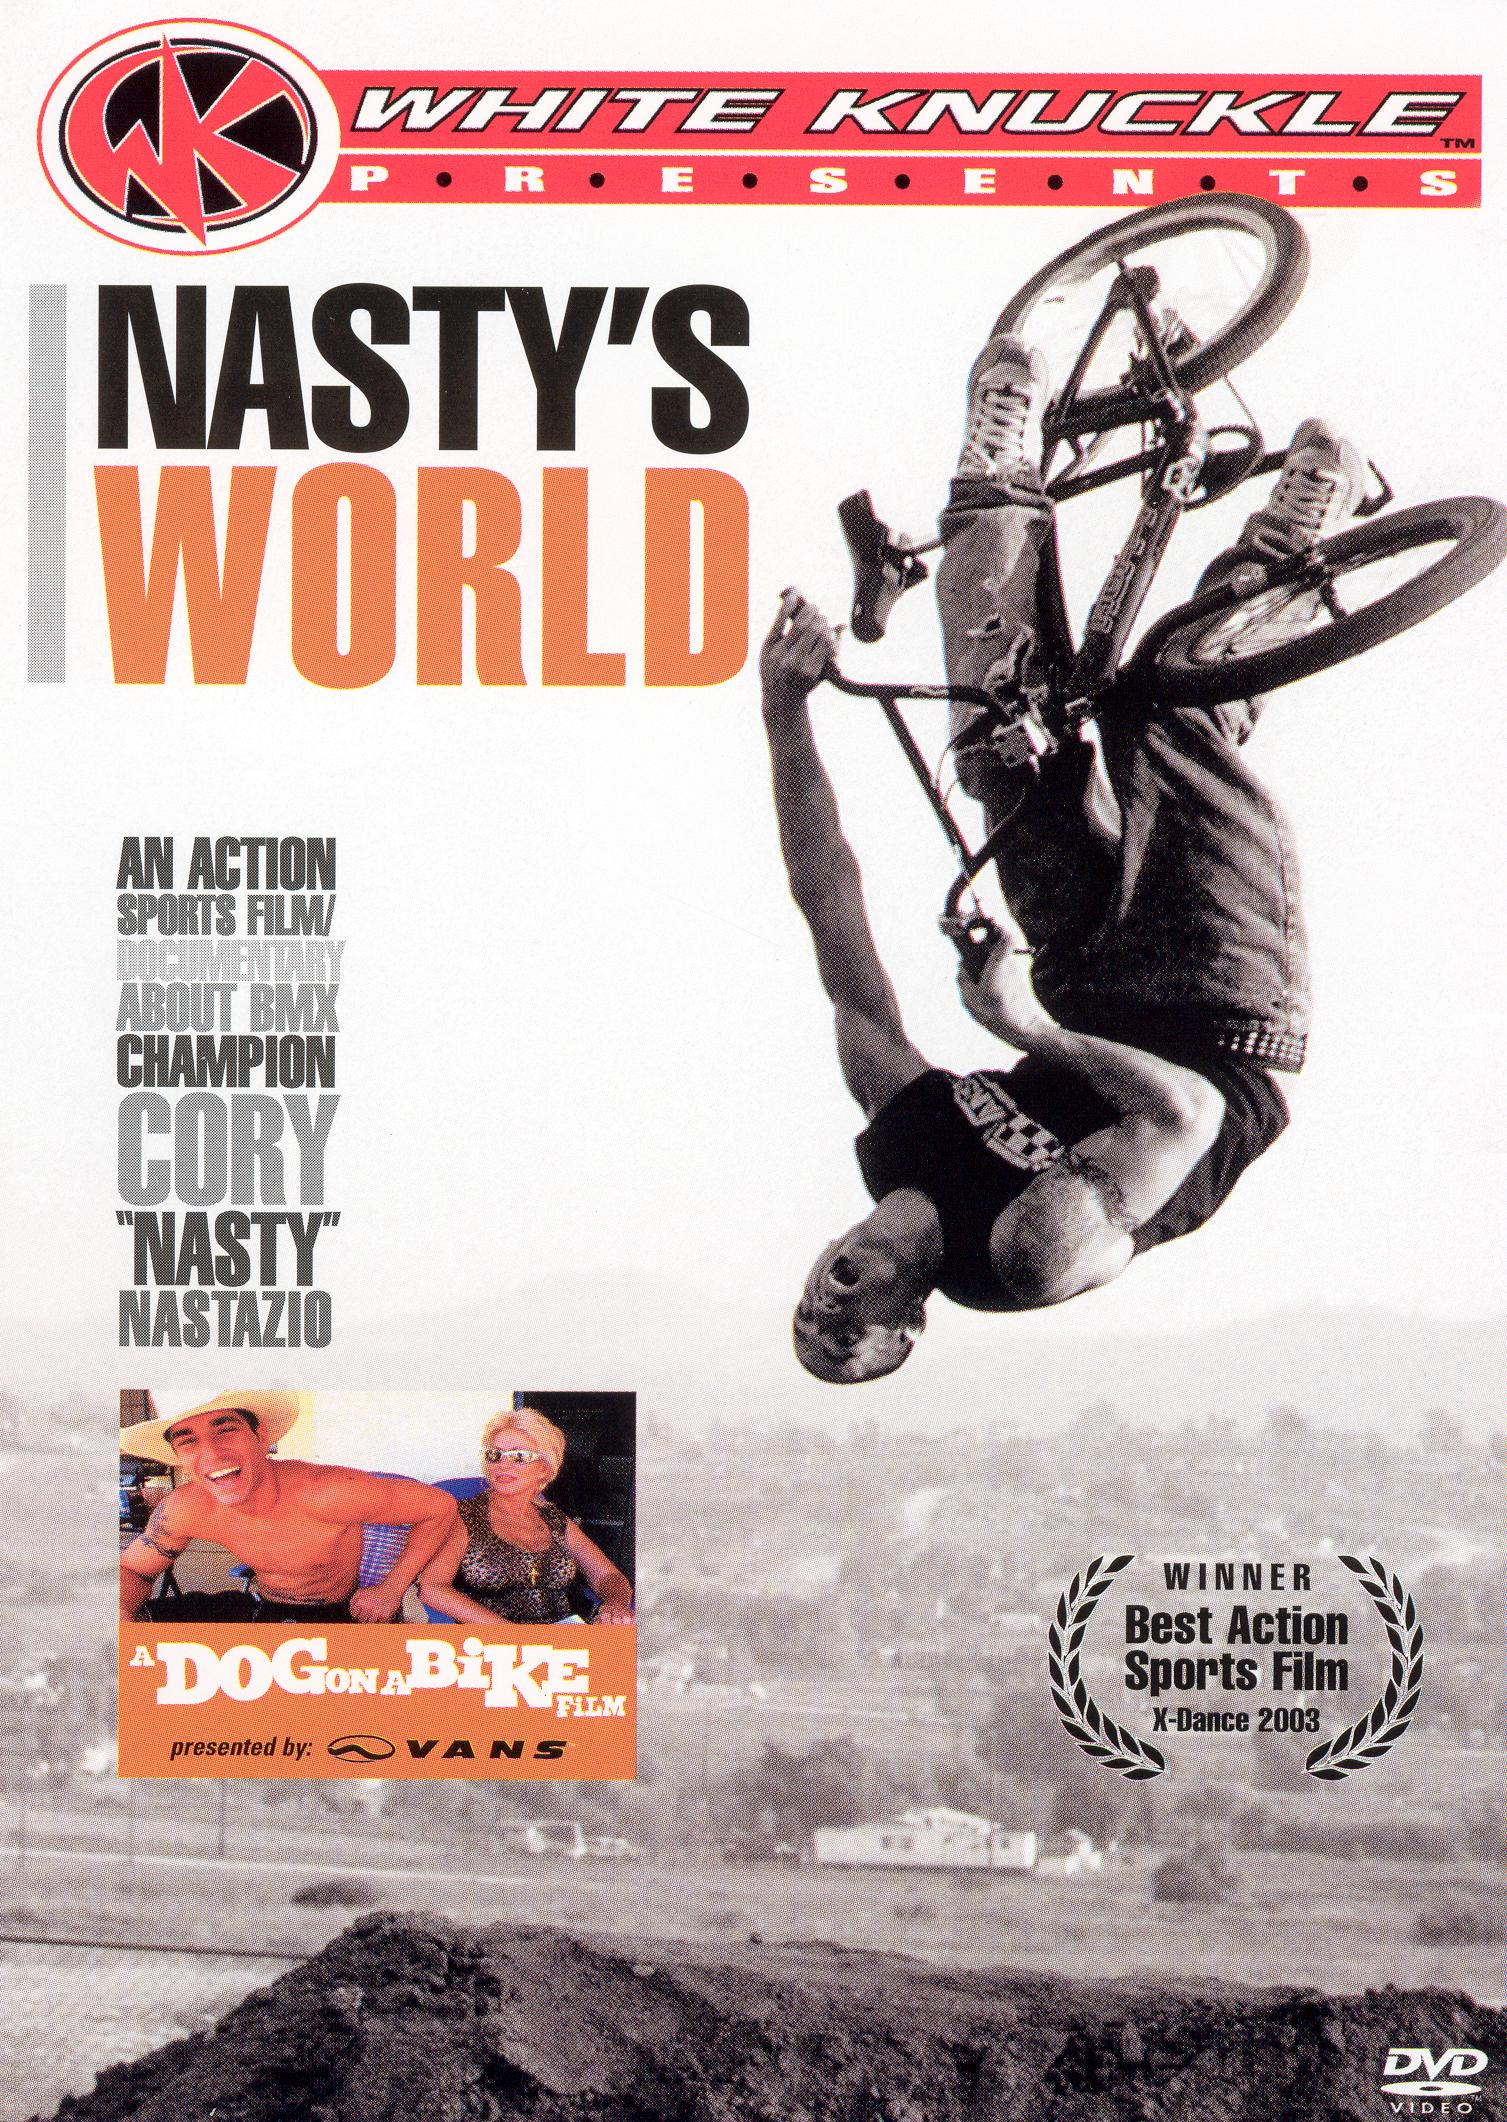 White Knuckle Extreme: Nasty's World